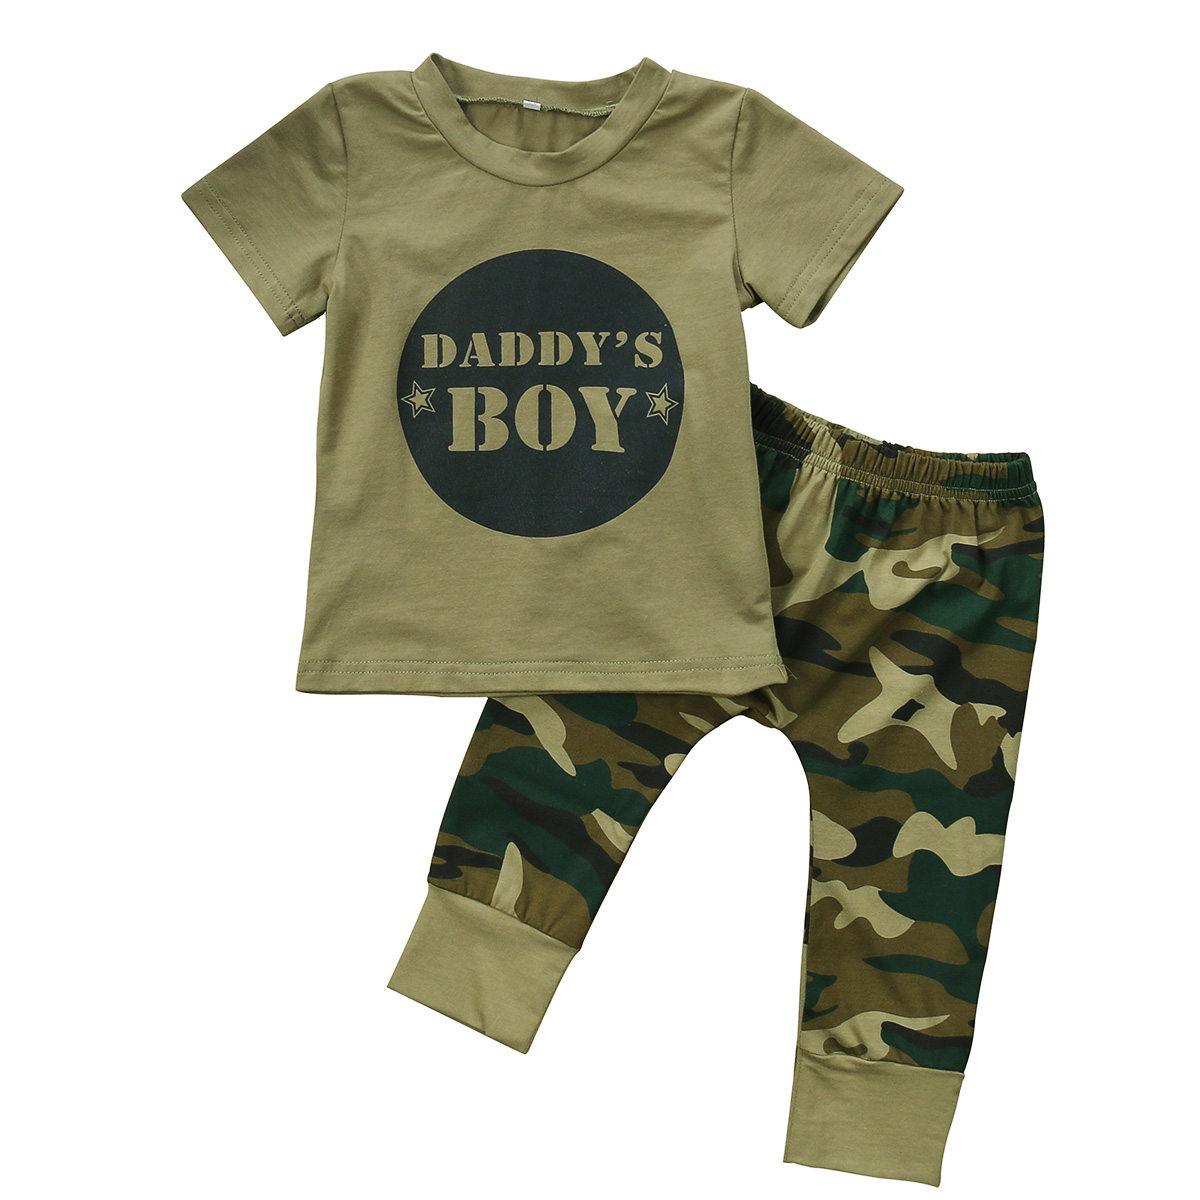 Newborn Baby Boys Girls Clothes Sets T-shirt Tops Short Sleeve Pants Cute Outfits Set Clothing Casual Baby 2pcs baby kids boys clothes set t shirt tops long sleeve outfits pants set cotton casual cute autumn clothing baby boy